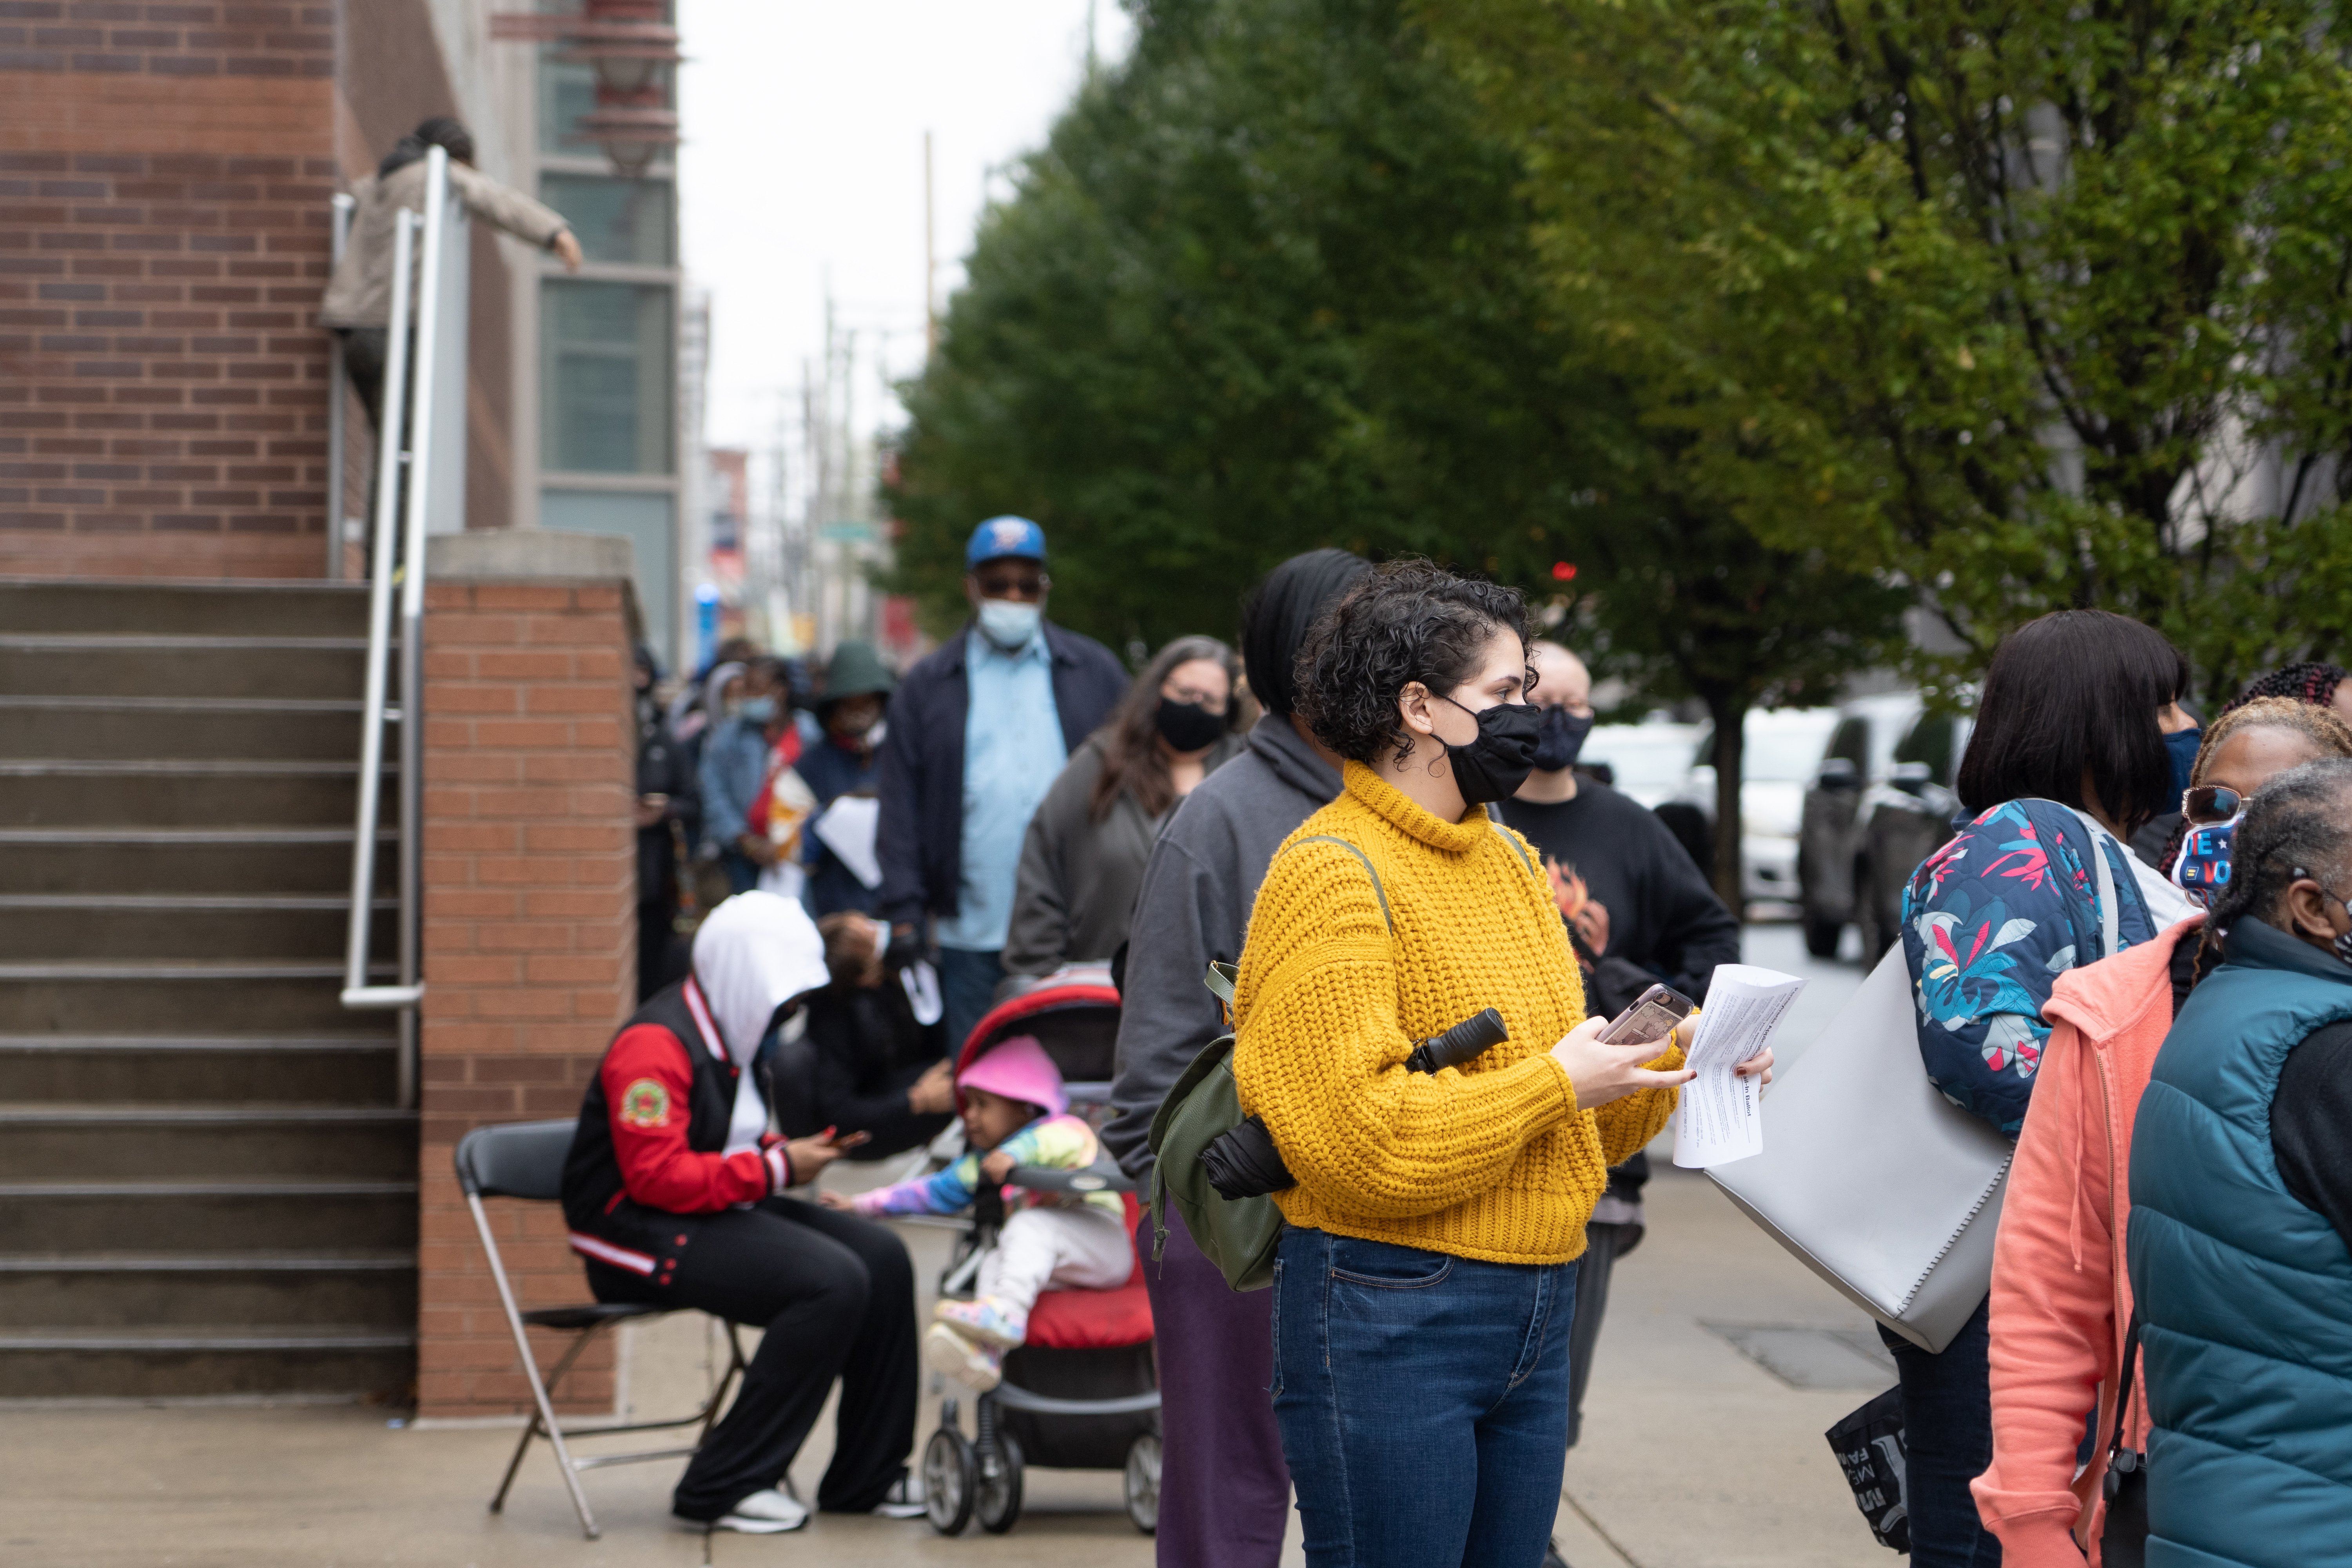 Voters waited in line with their mail-in ballot applications outside of Temple University's Liacouras Center in Philadelphia, Penn., on October 26, 2020